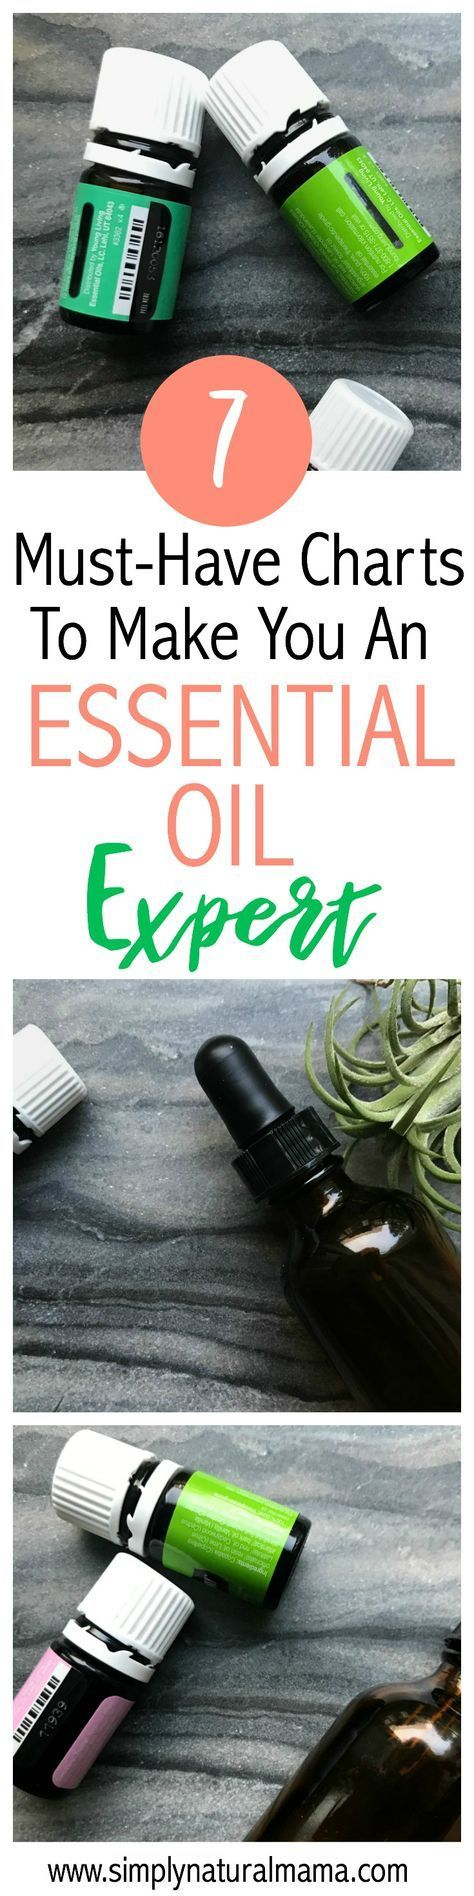 best essential oil images on pinterest beauty tutorials diy